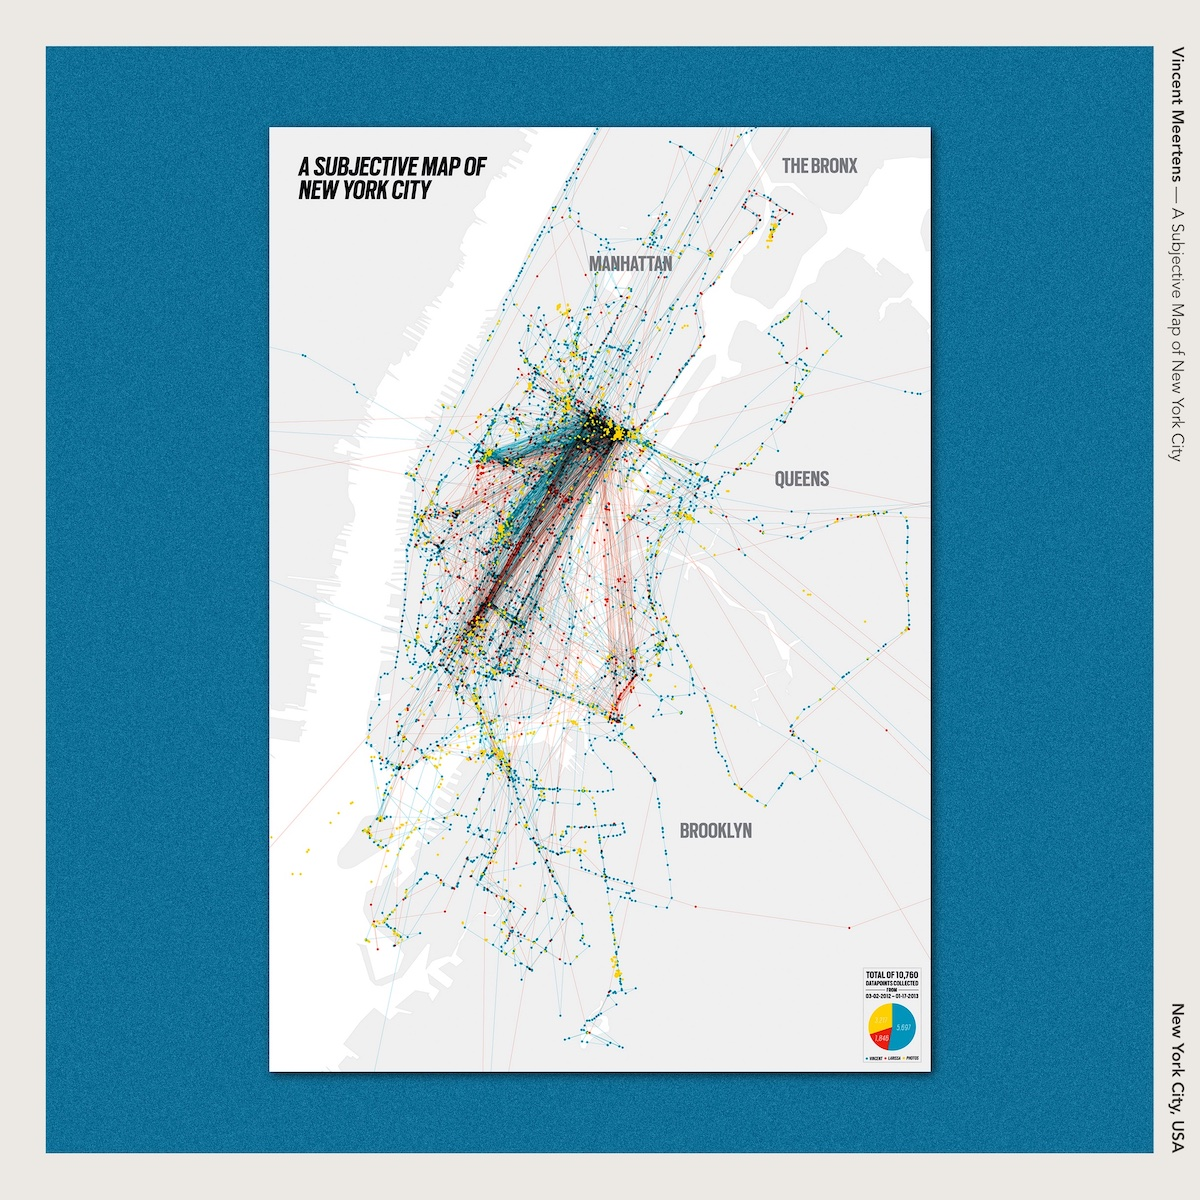 Vincent Meertens — A Subjective Map of New York City